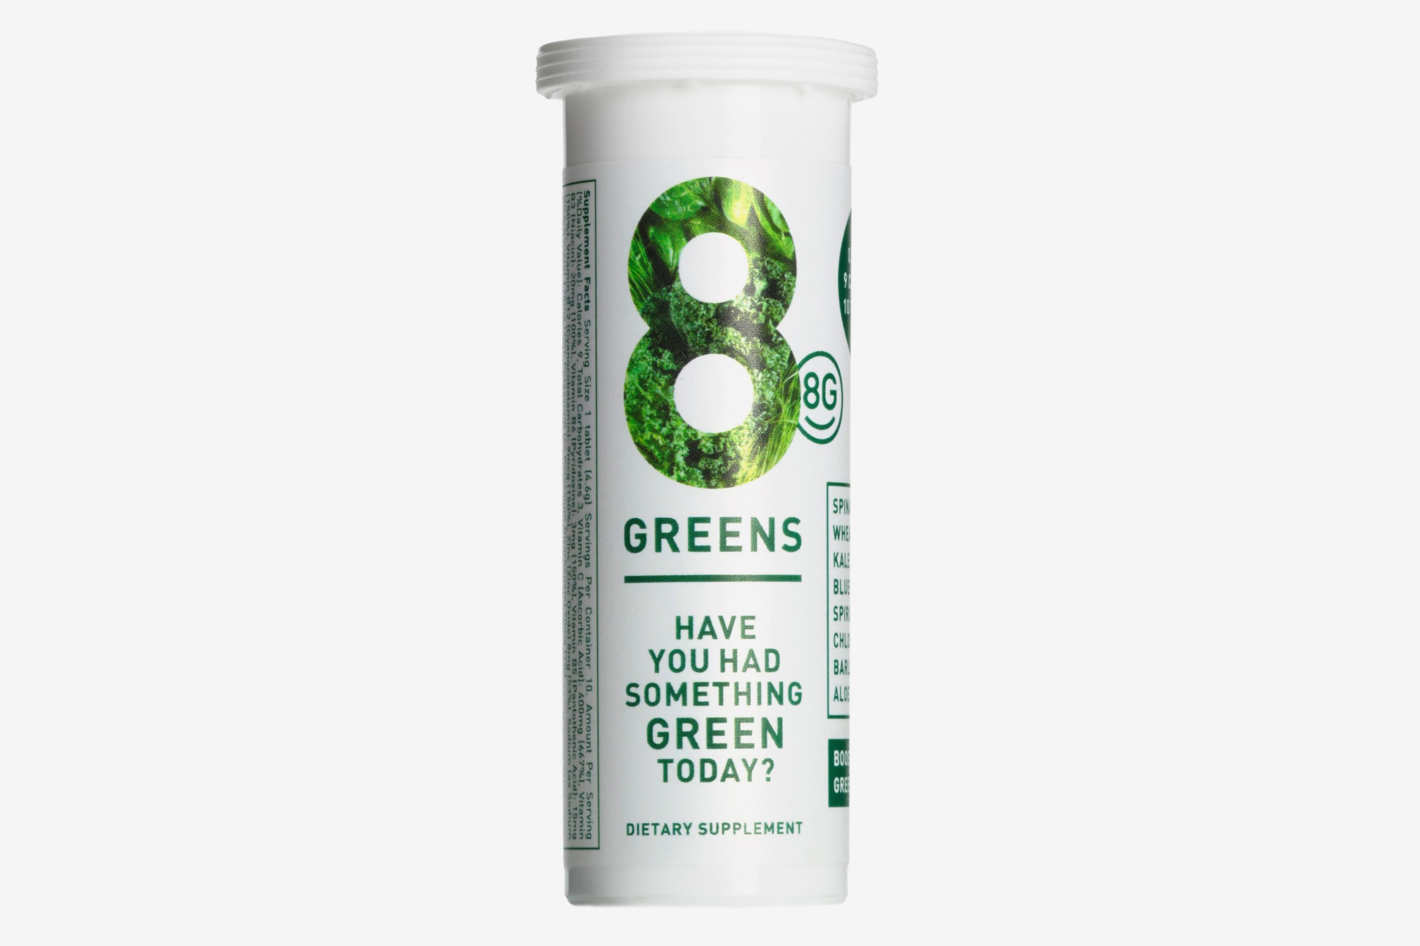 8 Greens Dietary Supplement